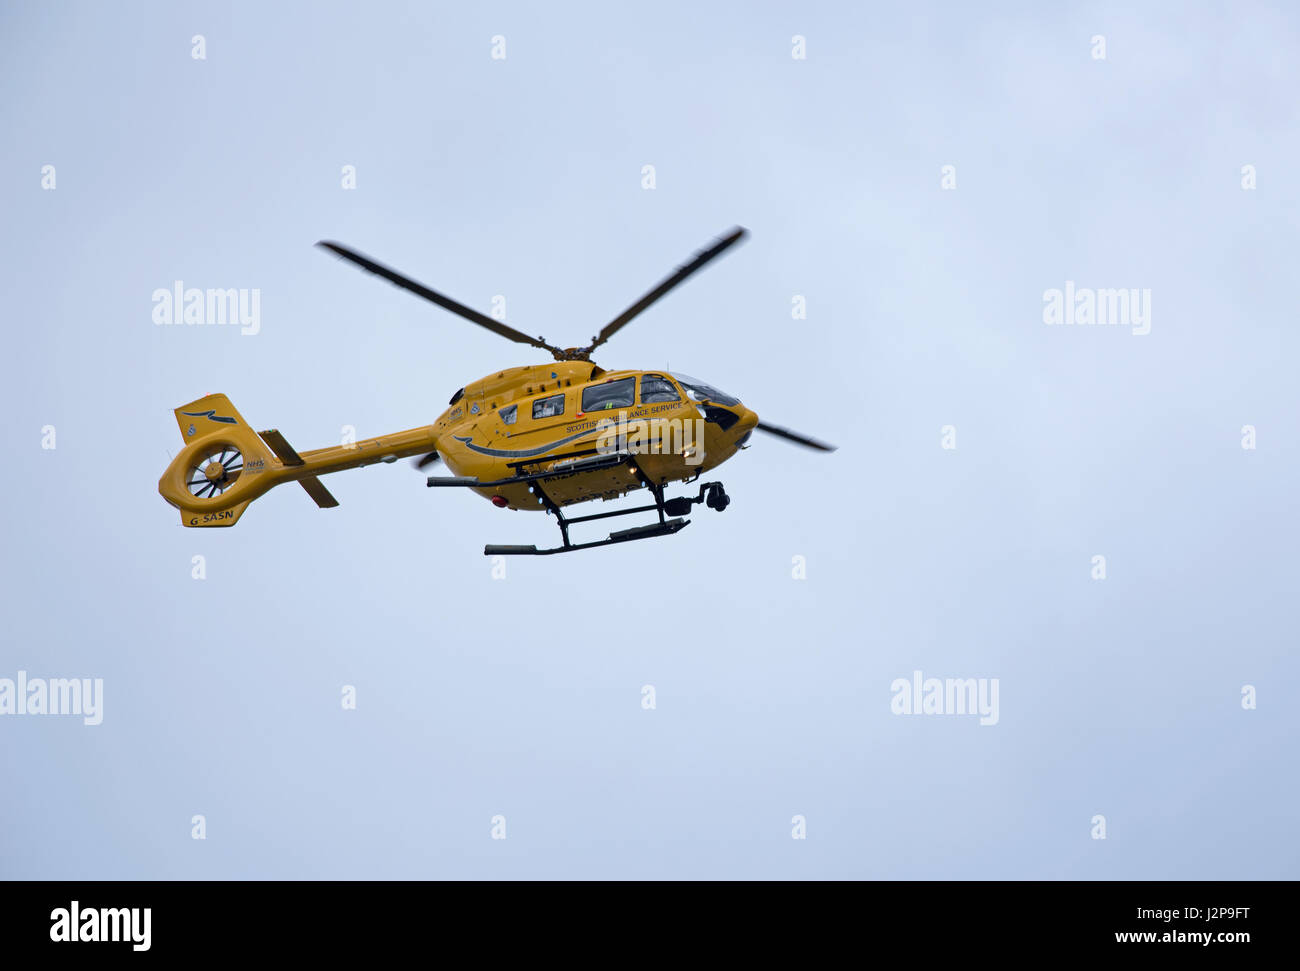 Inverness Based Helimed EC145 T2 returning to based at Inverness Dalcross Airport, in the Scottish Highlands. - Stock Image